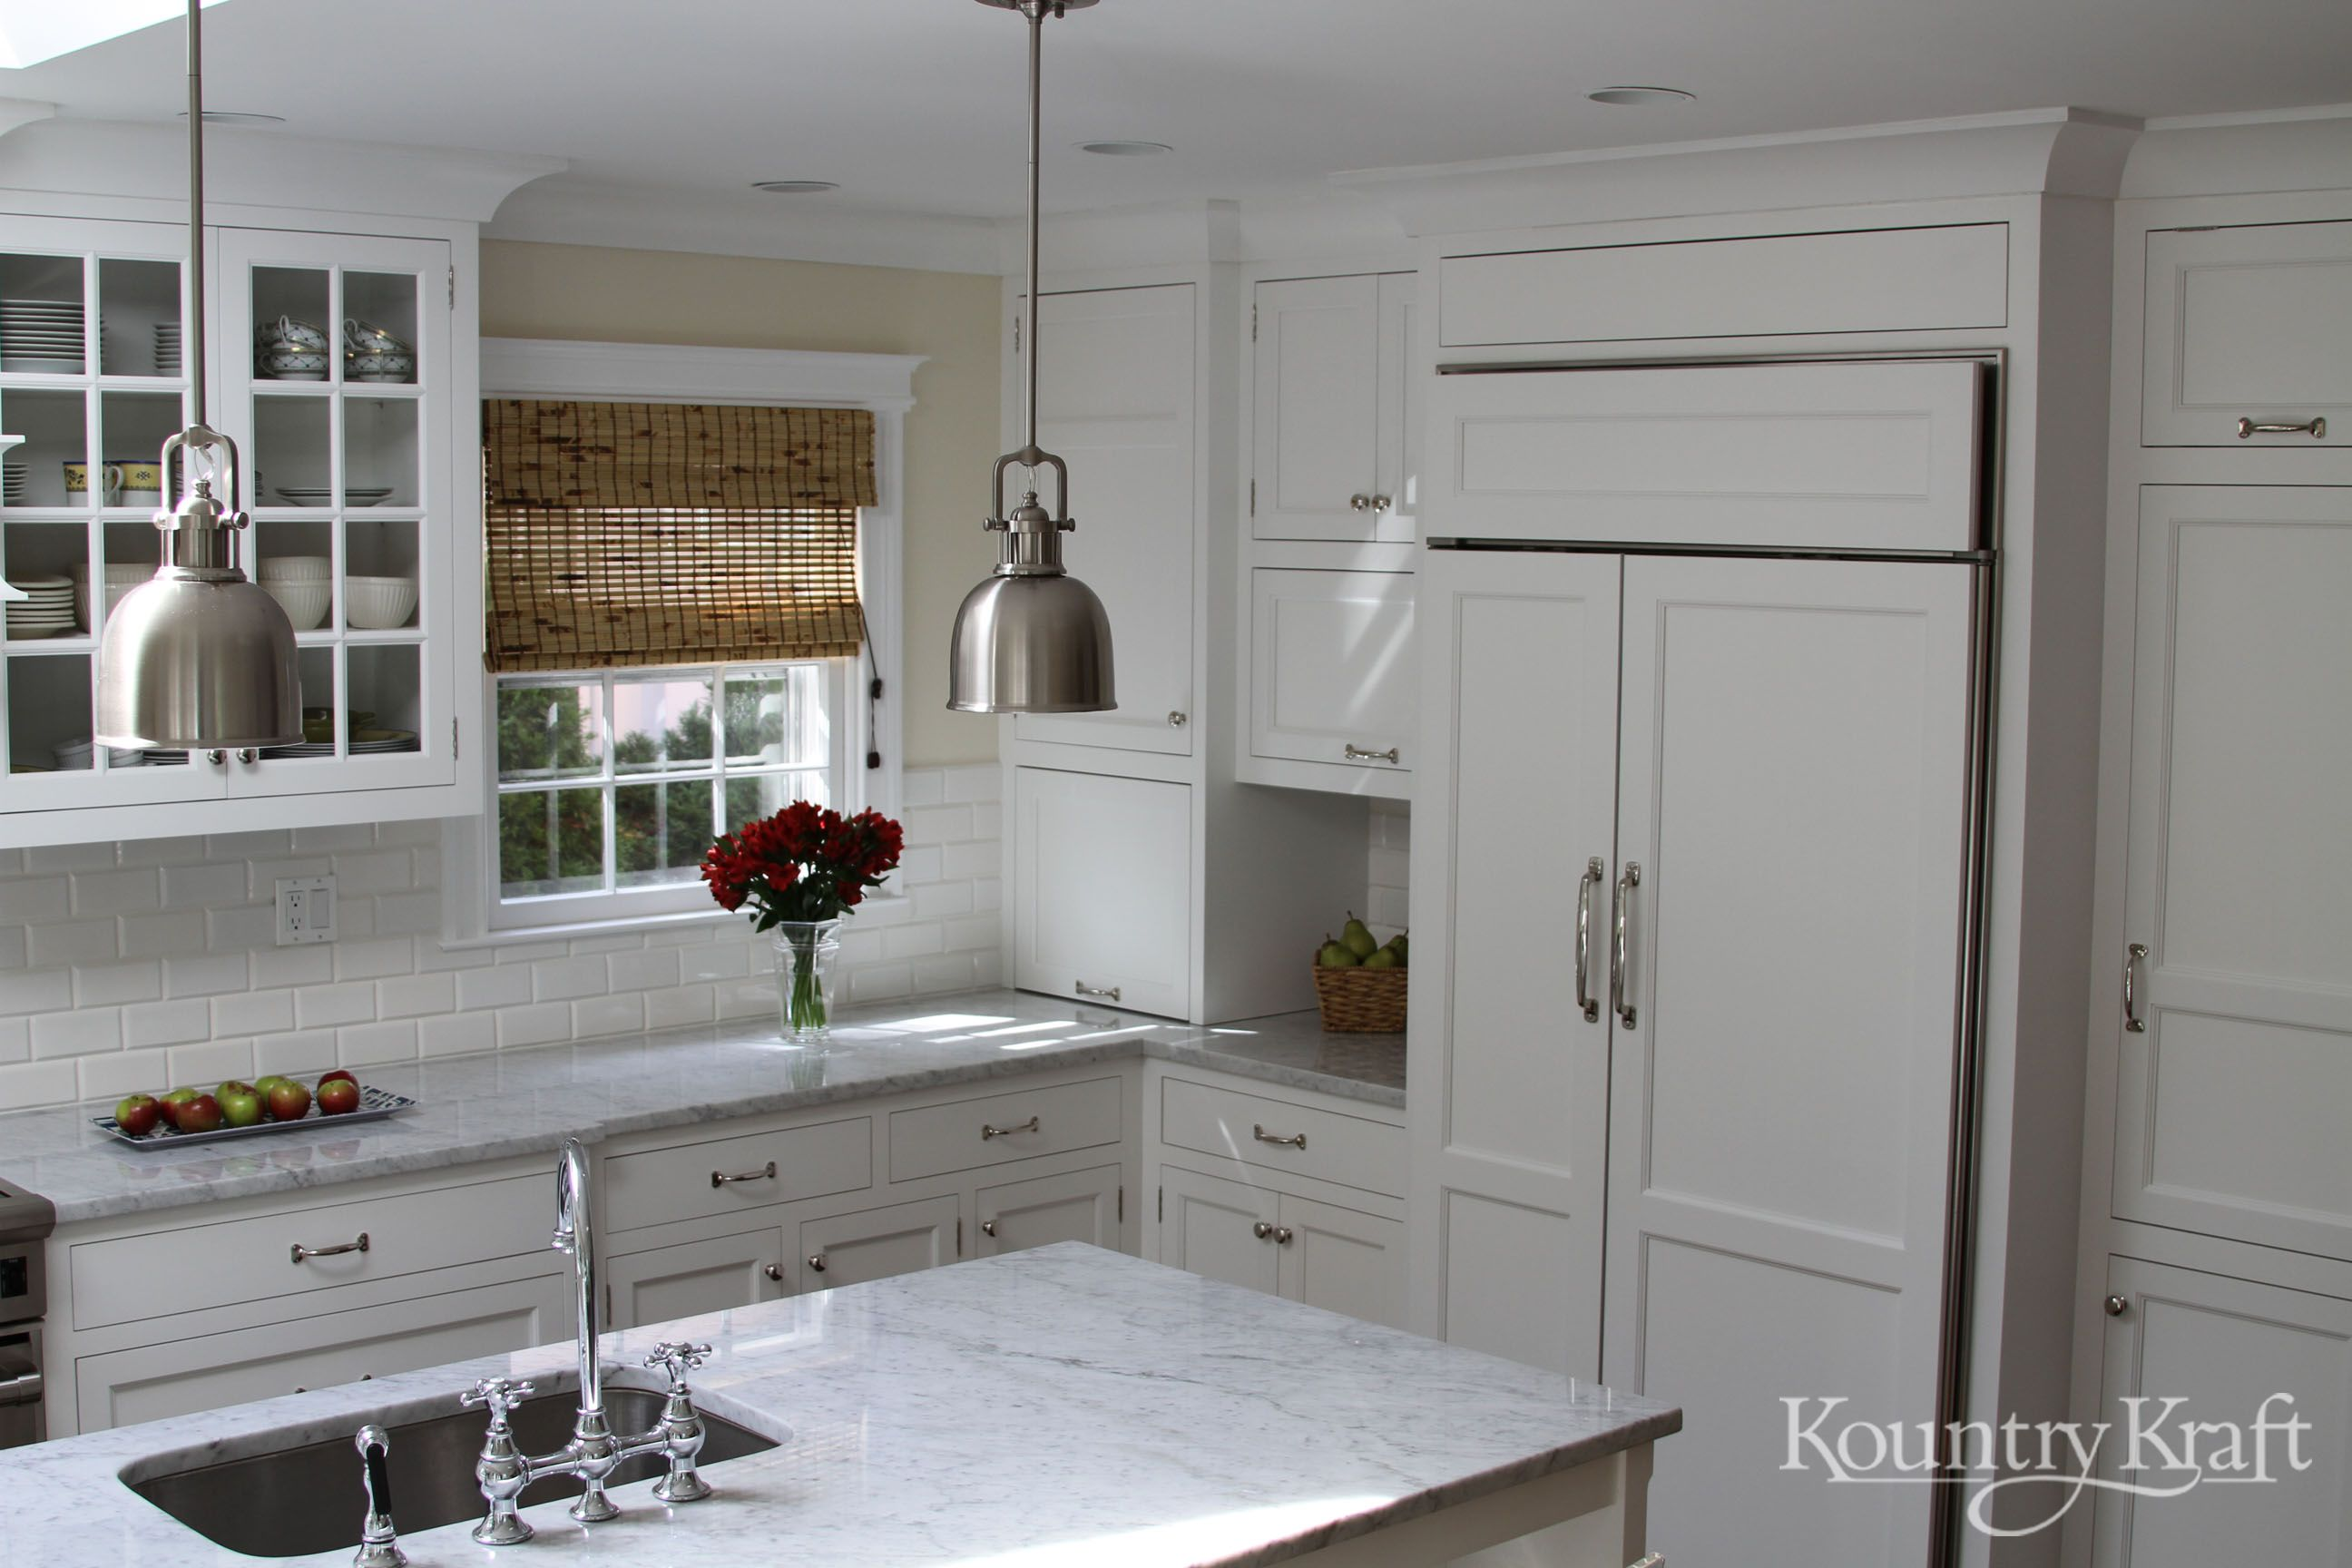 Custom Kitchen Cabinets Designed By Bradford Design Llc In Bethesda Md This Classic W Kitchen Cabinets Custom Kitchen Cabinets Design Custom Kitchen Cabinets